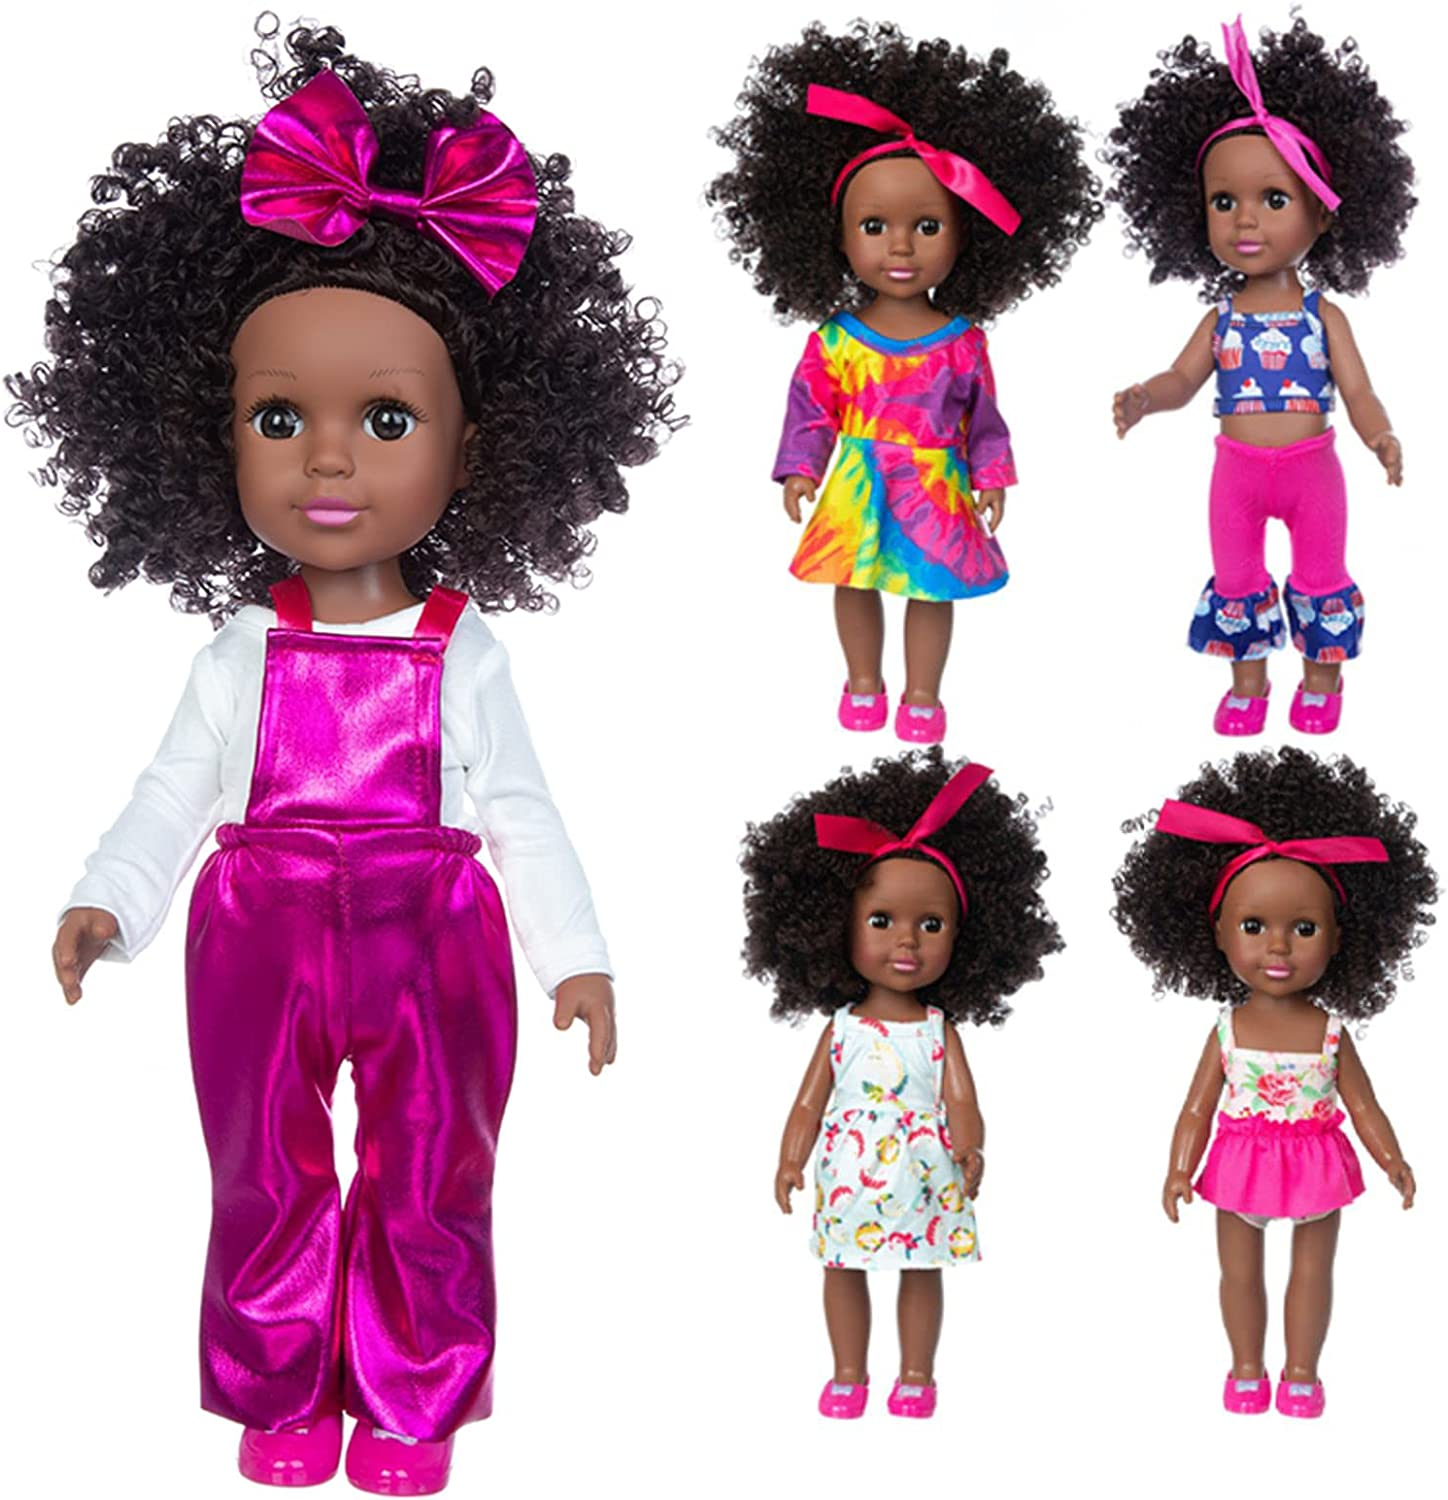 HOAYO 14 Inch Black African American Special sale item Bombing new work Sets Doll 5 Clothes Real